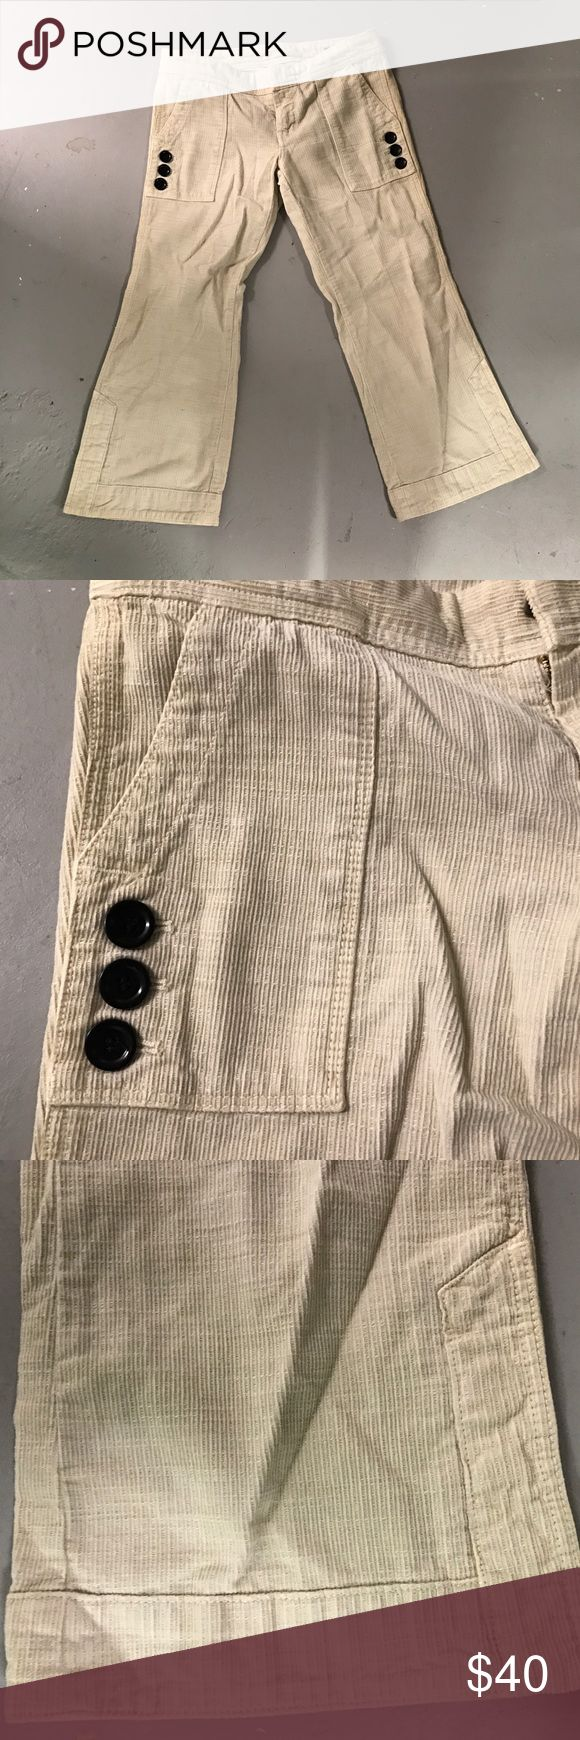 Citizens for Humanity corduroy Capri pants Citizens for Humanity corduroy Capri pants. Cream color. Size 27. Inseam 23 inches. 2 front pockets. 3 buttons on the pockets. 100% cotton. Excellent condition. Citizens of Humanity Pants Capris